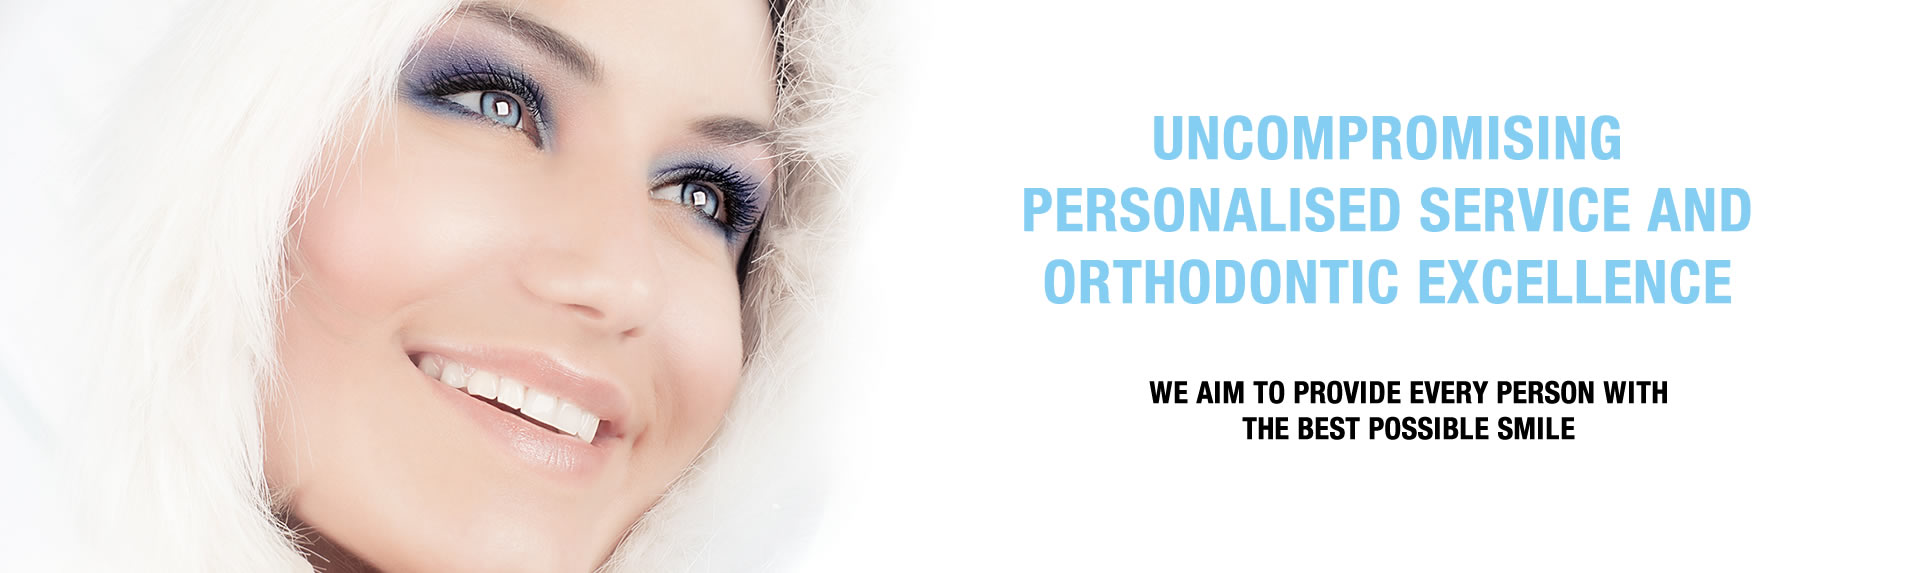 Award winning orthodontist Ireland